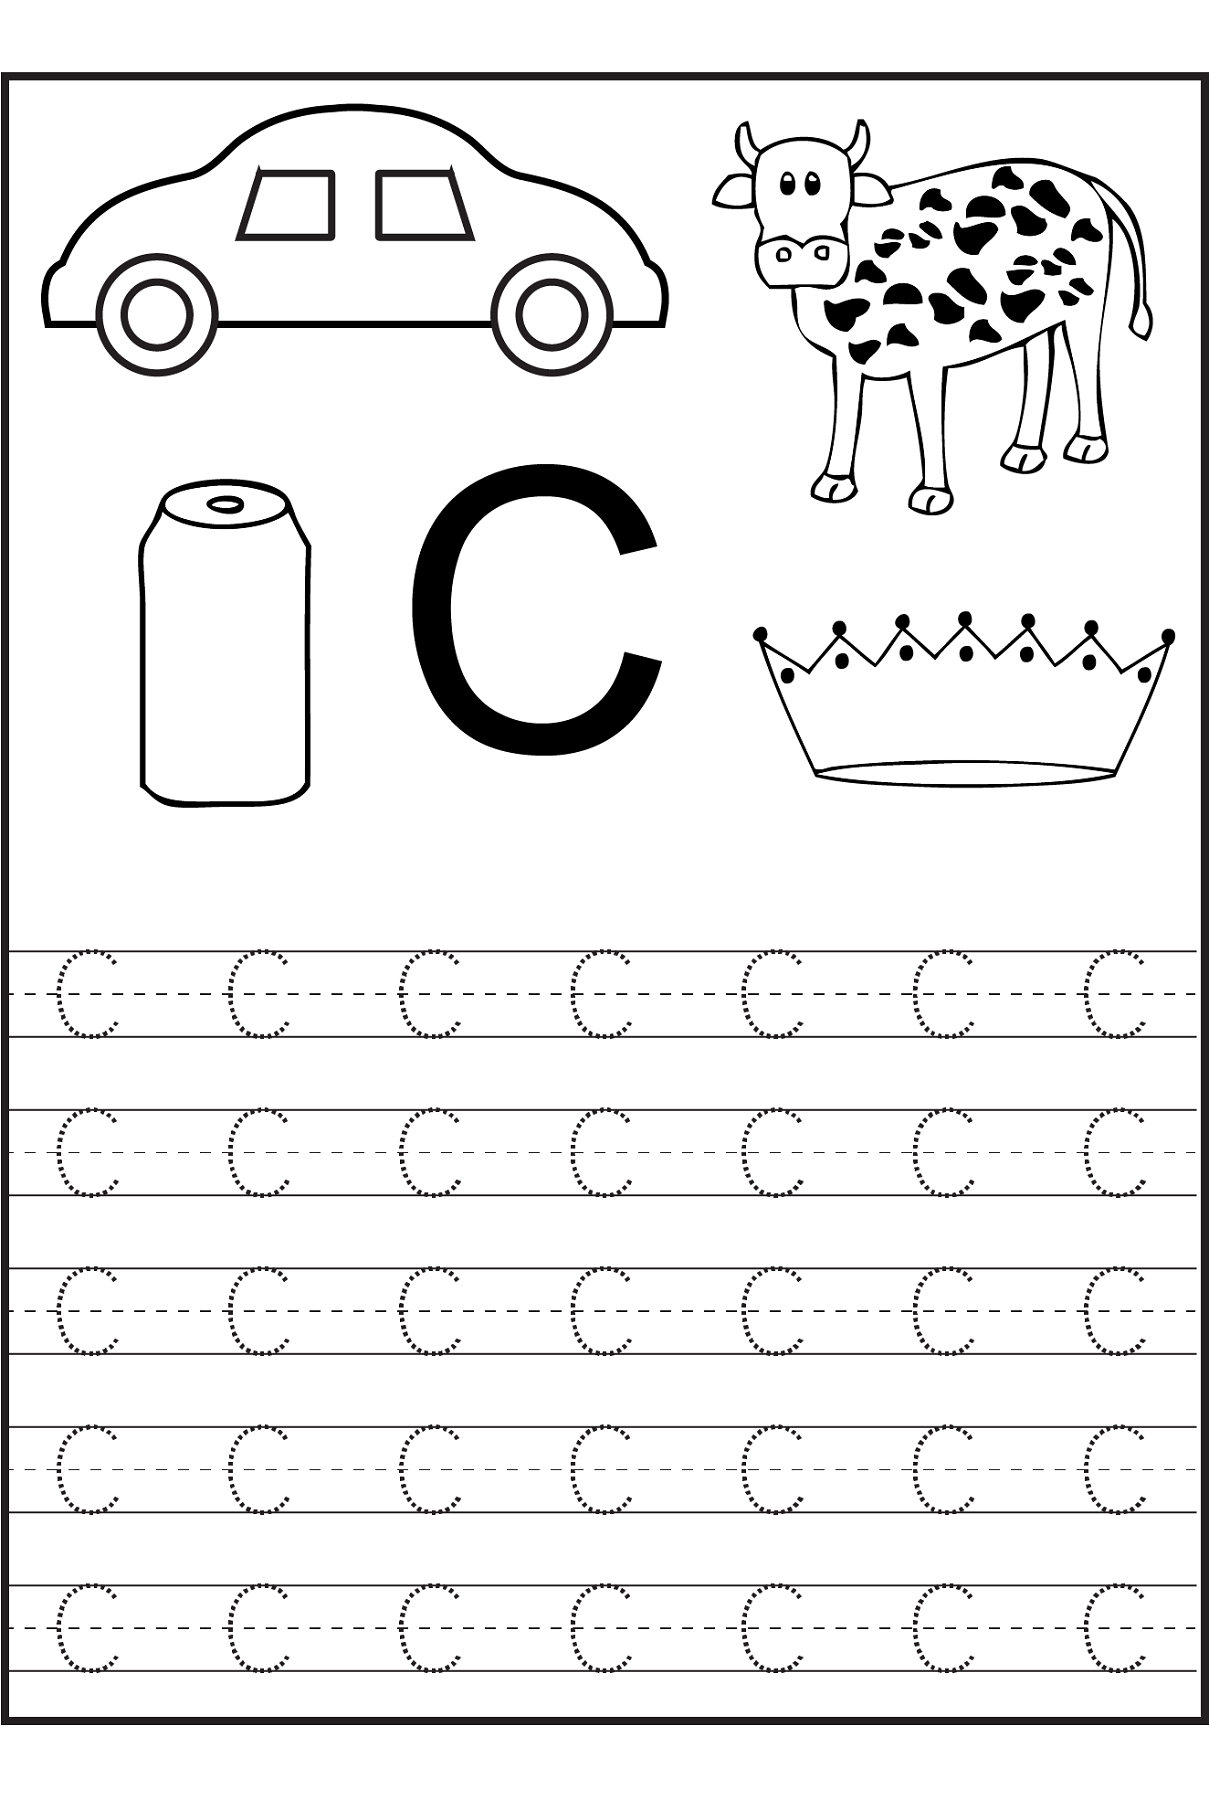 Worksheets Free Printable Letter Recognition Worksheets trace the letter c worksheets activity shelter alphabet and tracing for kindergarten capital letters 26 free prin